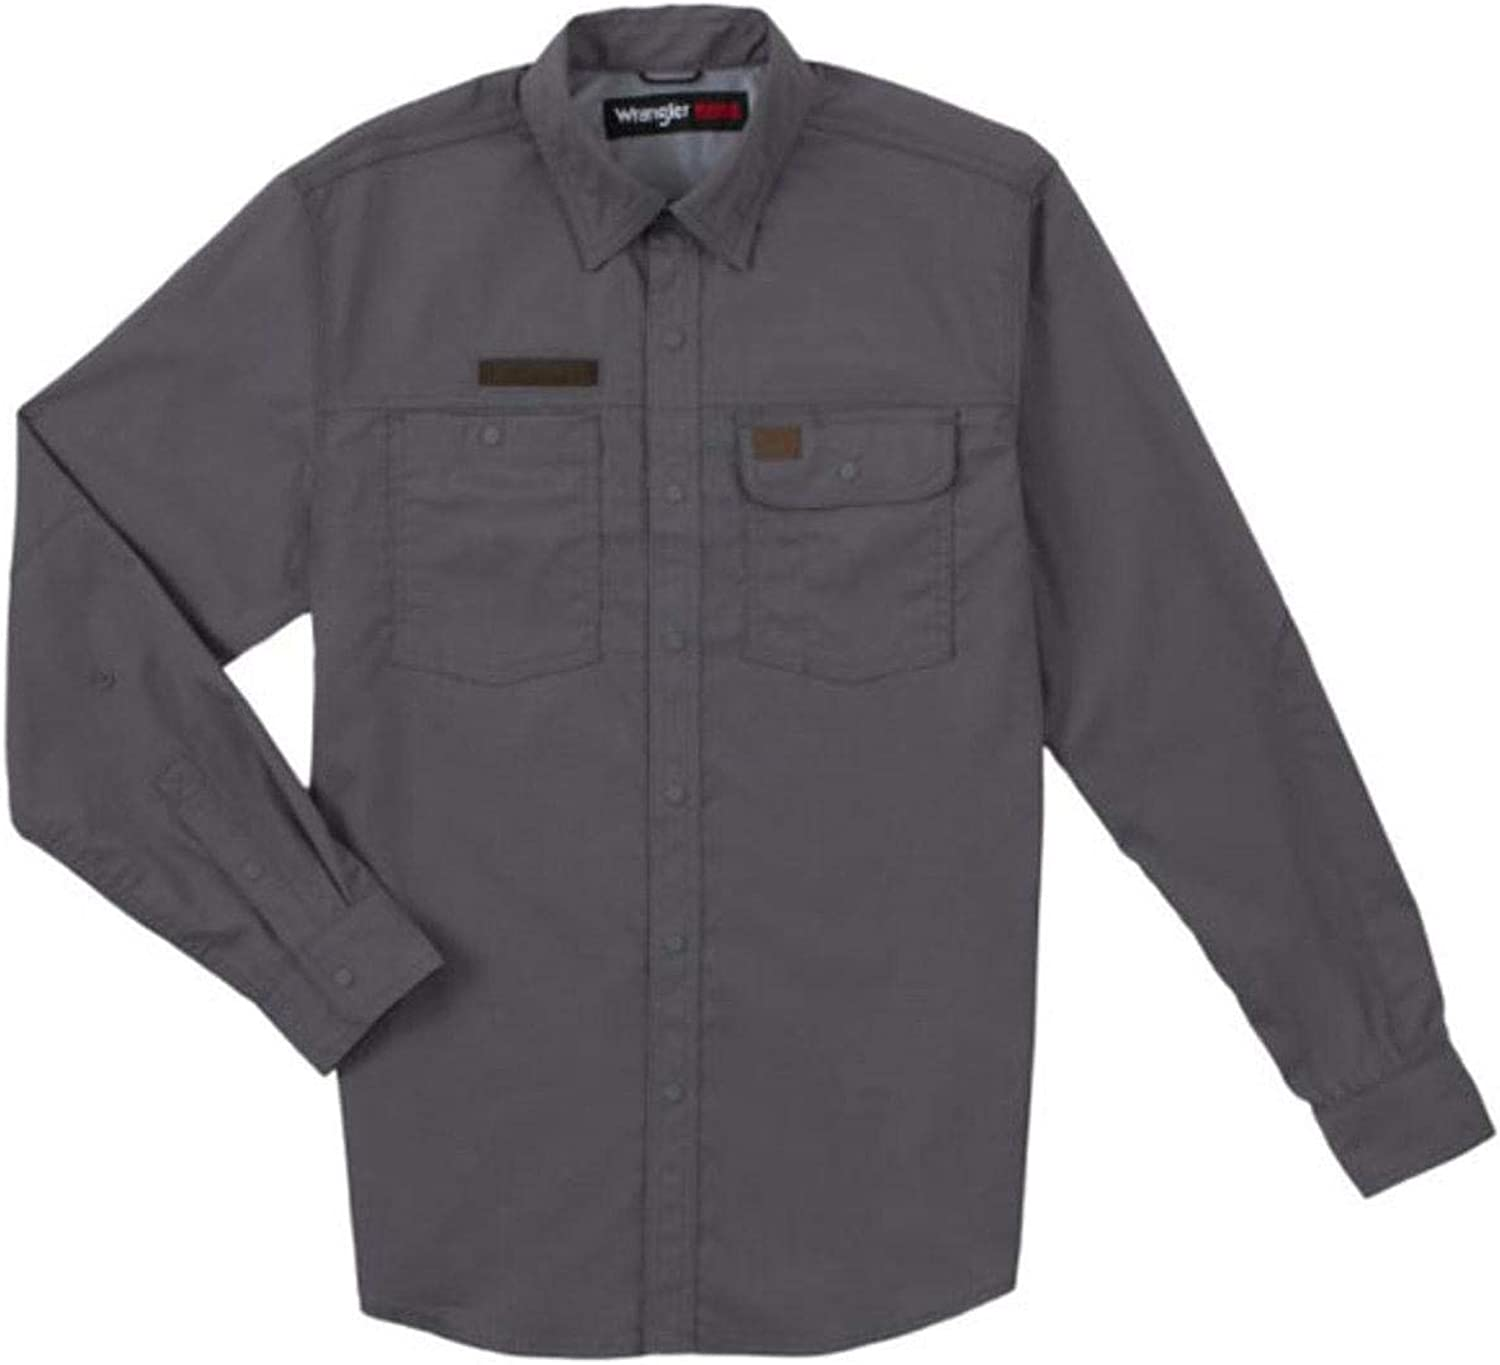 Wrangler Men's Riggs Solid Grey Vented Long Sleeve Button-Down Work Shirt Big